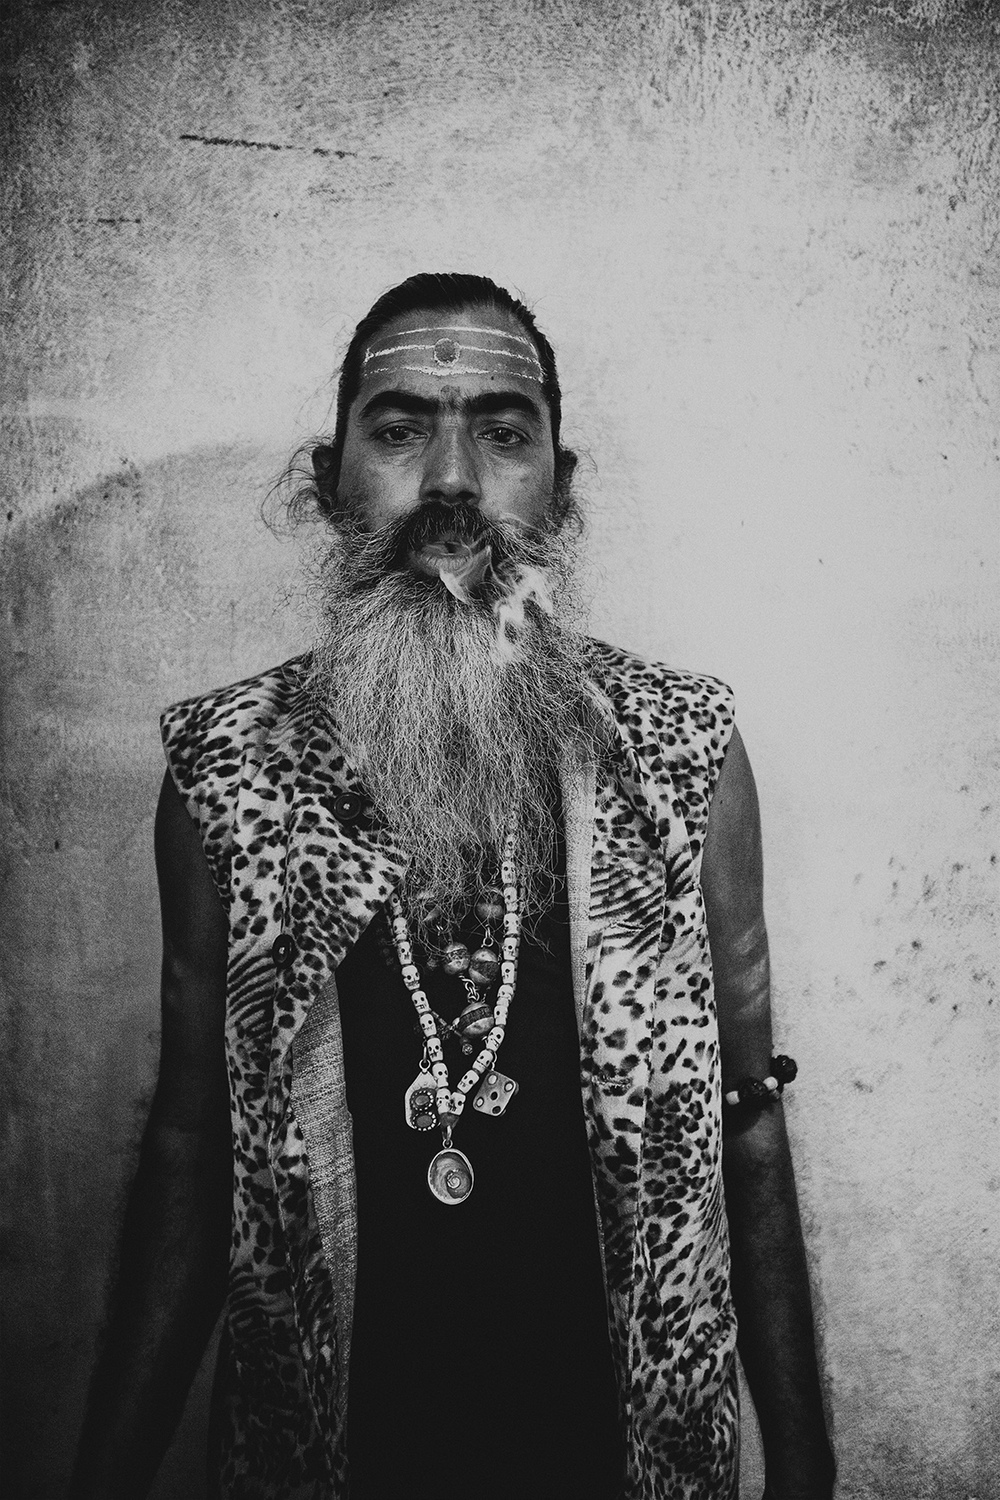 Moradi Baba, Varanasi, India                                                                   photo copyright : Russell Shakespeare